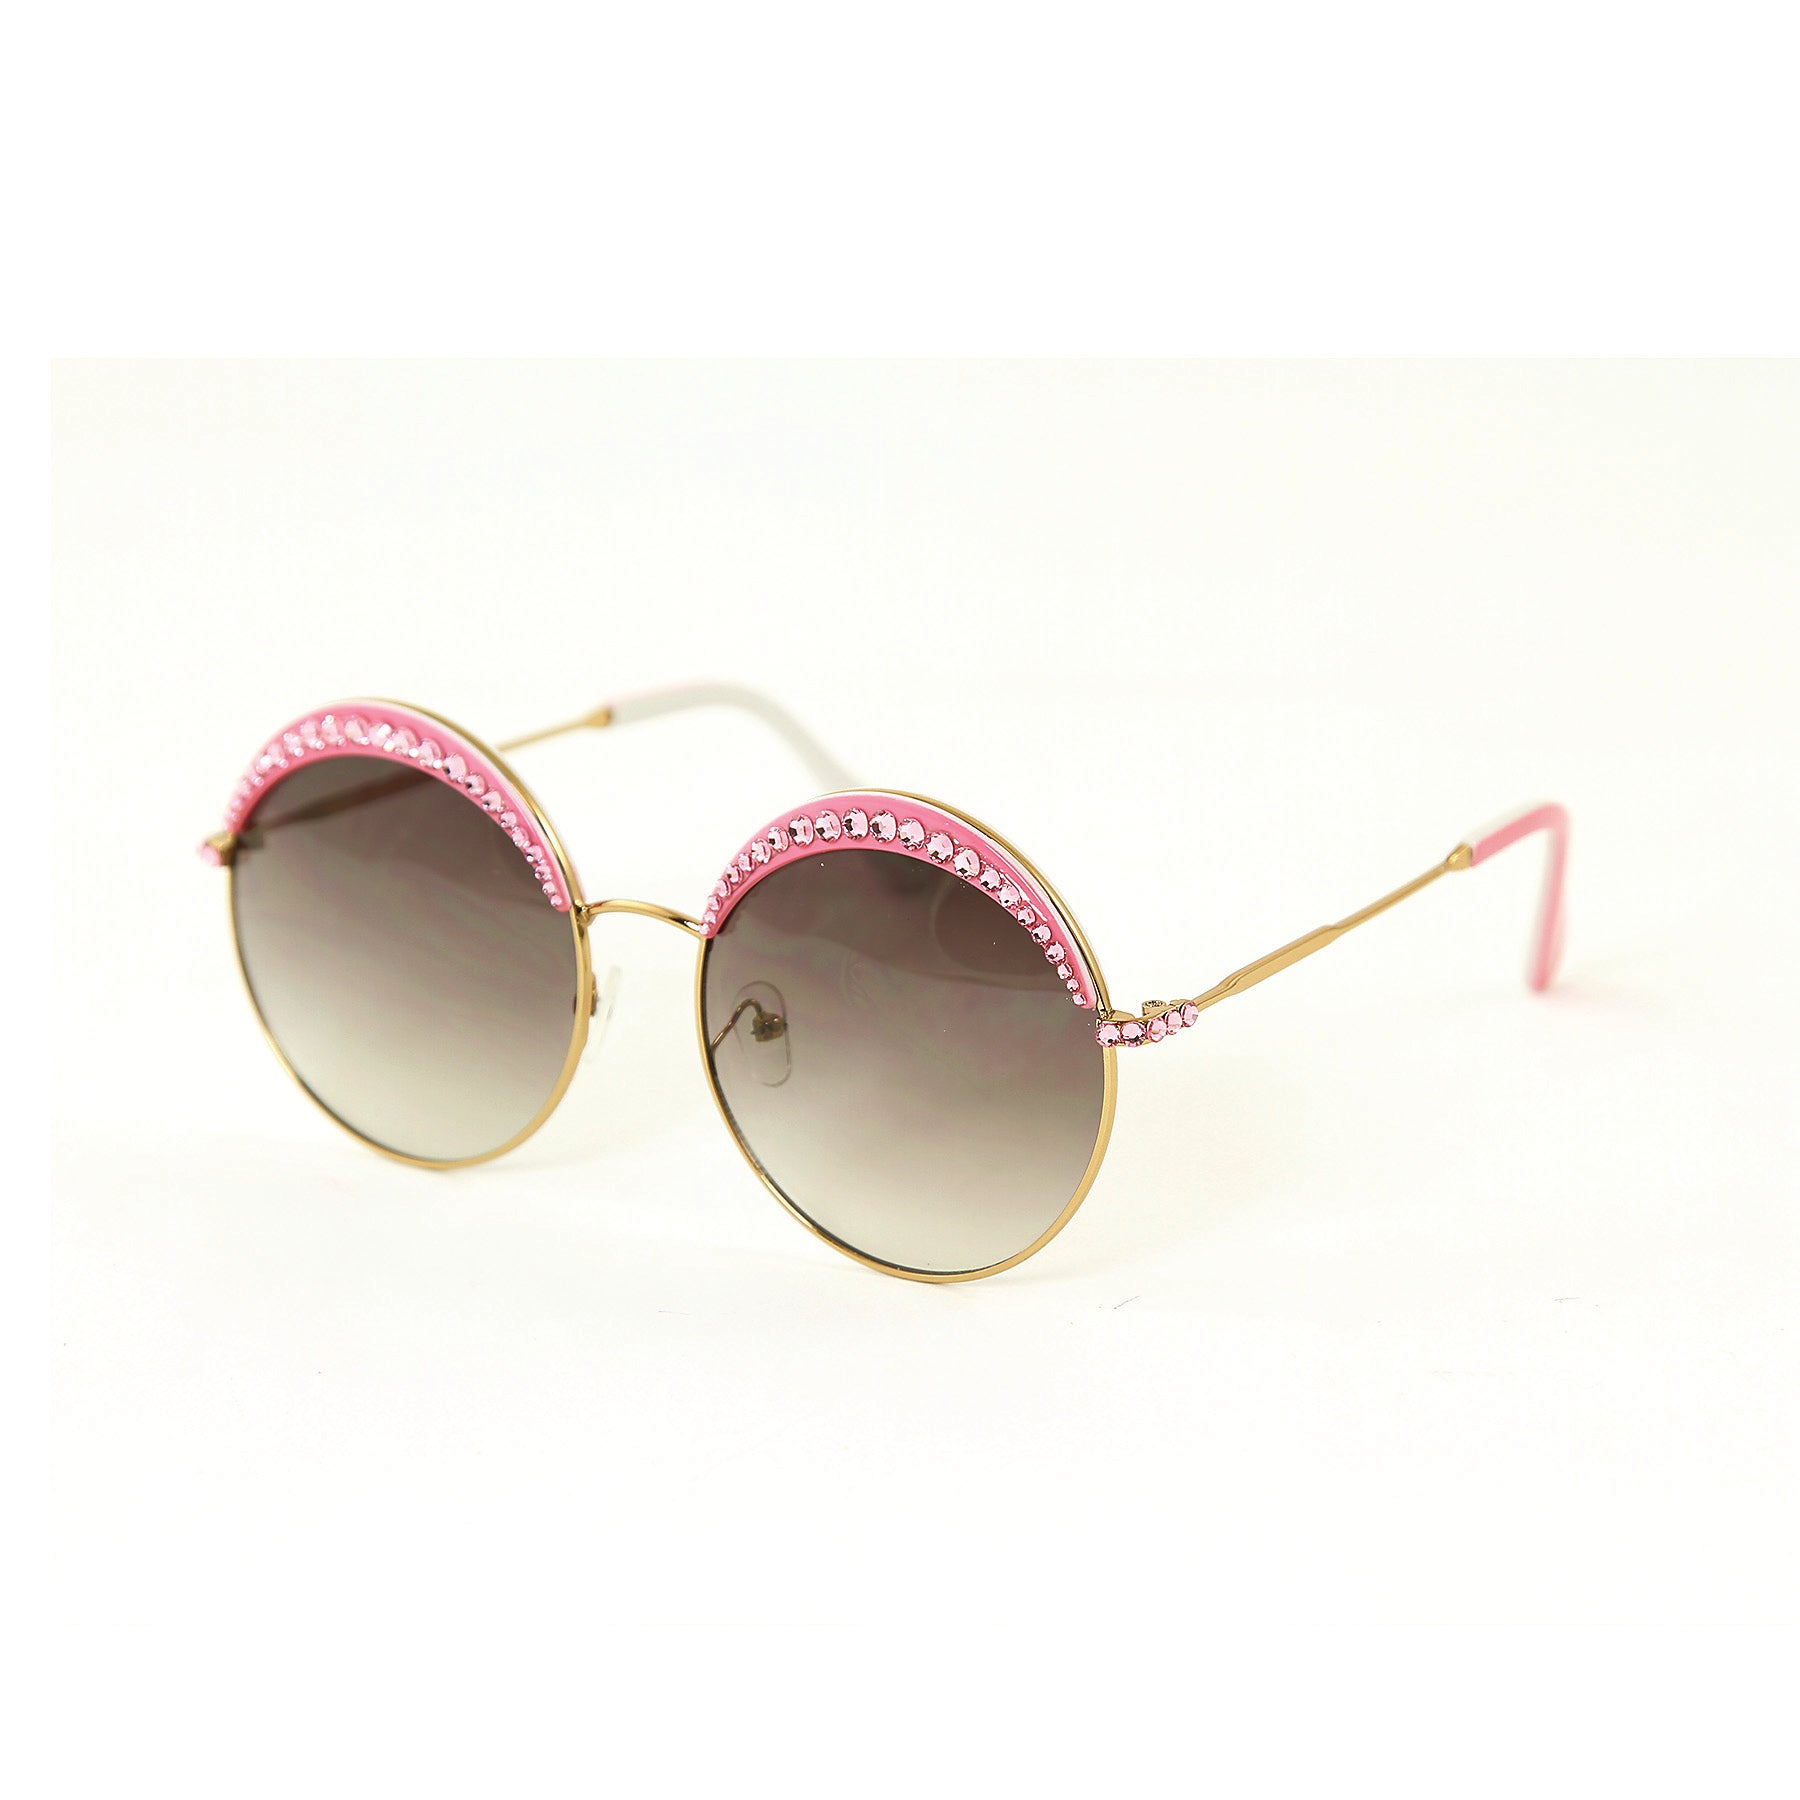 Sunglasses Made with Swarovski Elements, pink color, side view